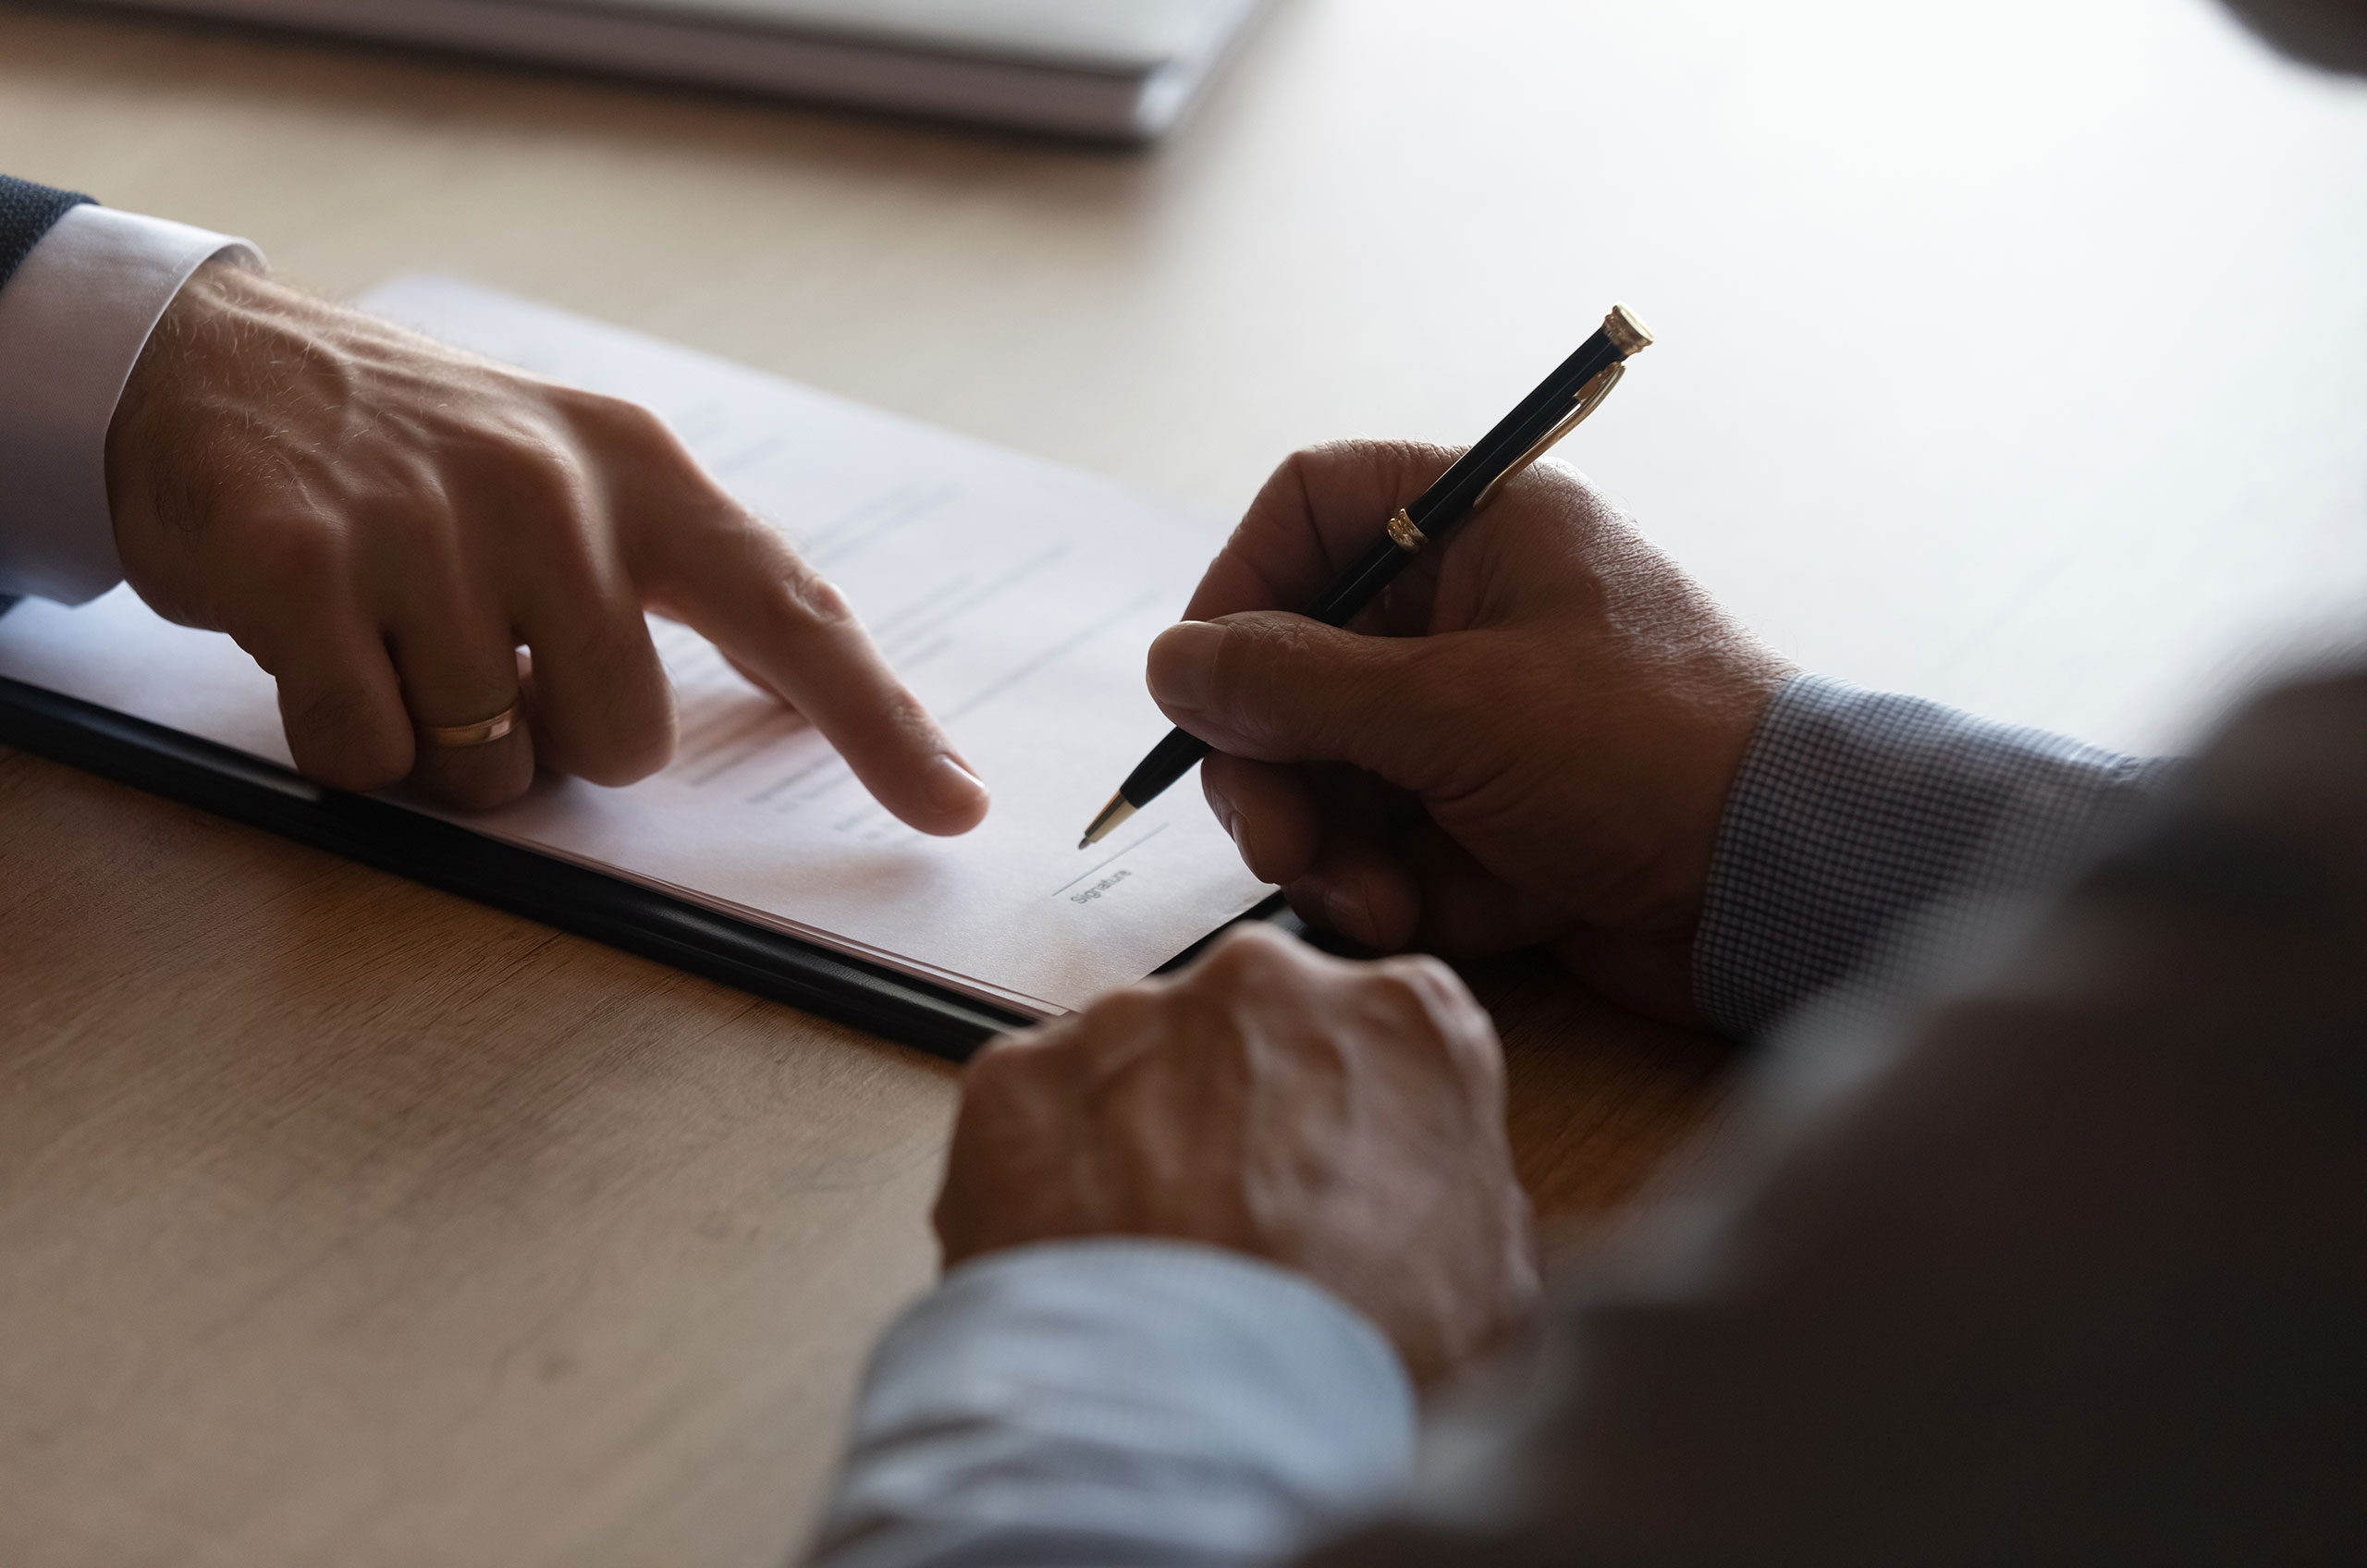 Hands of lawyer pointing at paper for businessman signing contract. Solicitor, legal advisor helping mature client to fill up document, medical insurance form, will, affixing signature. Paperwork